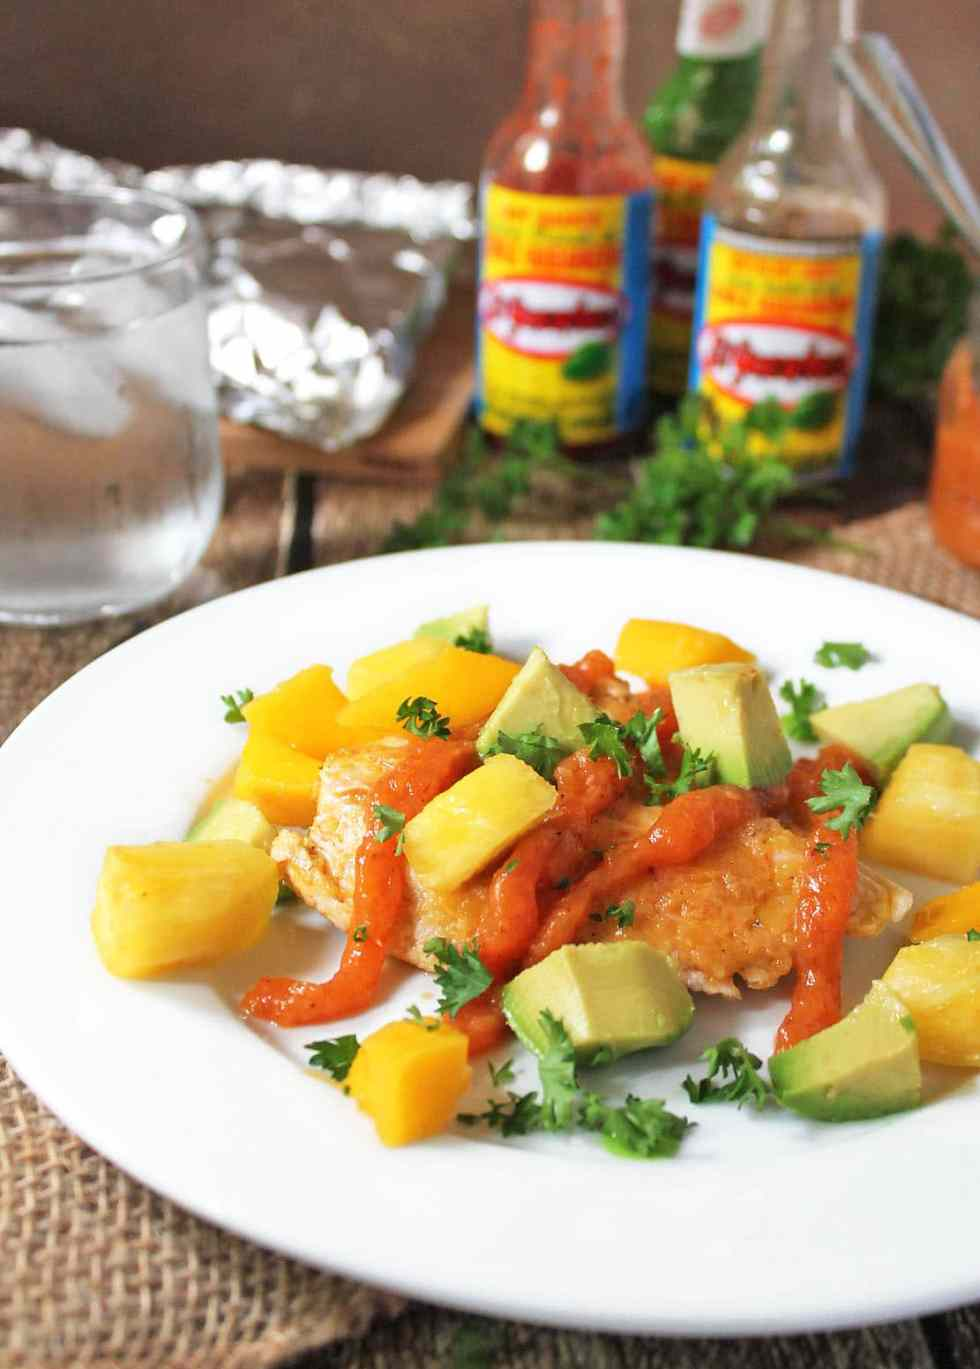 Chicken-With-Spicy-Pineapple-Mango-Sauce-#KingOfFlavor